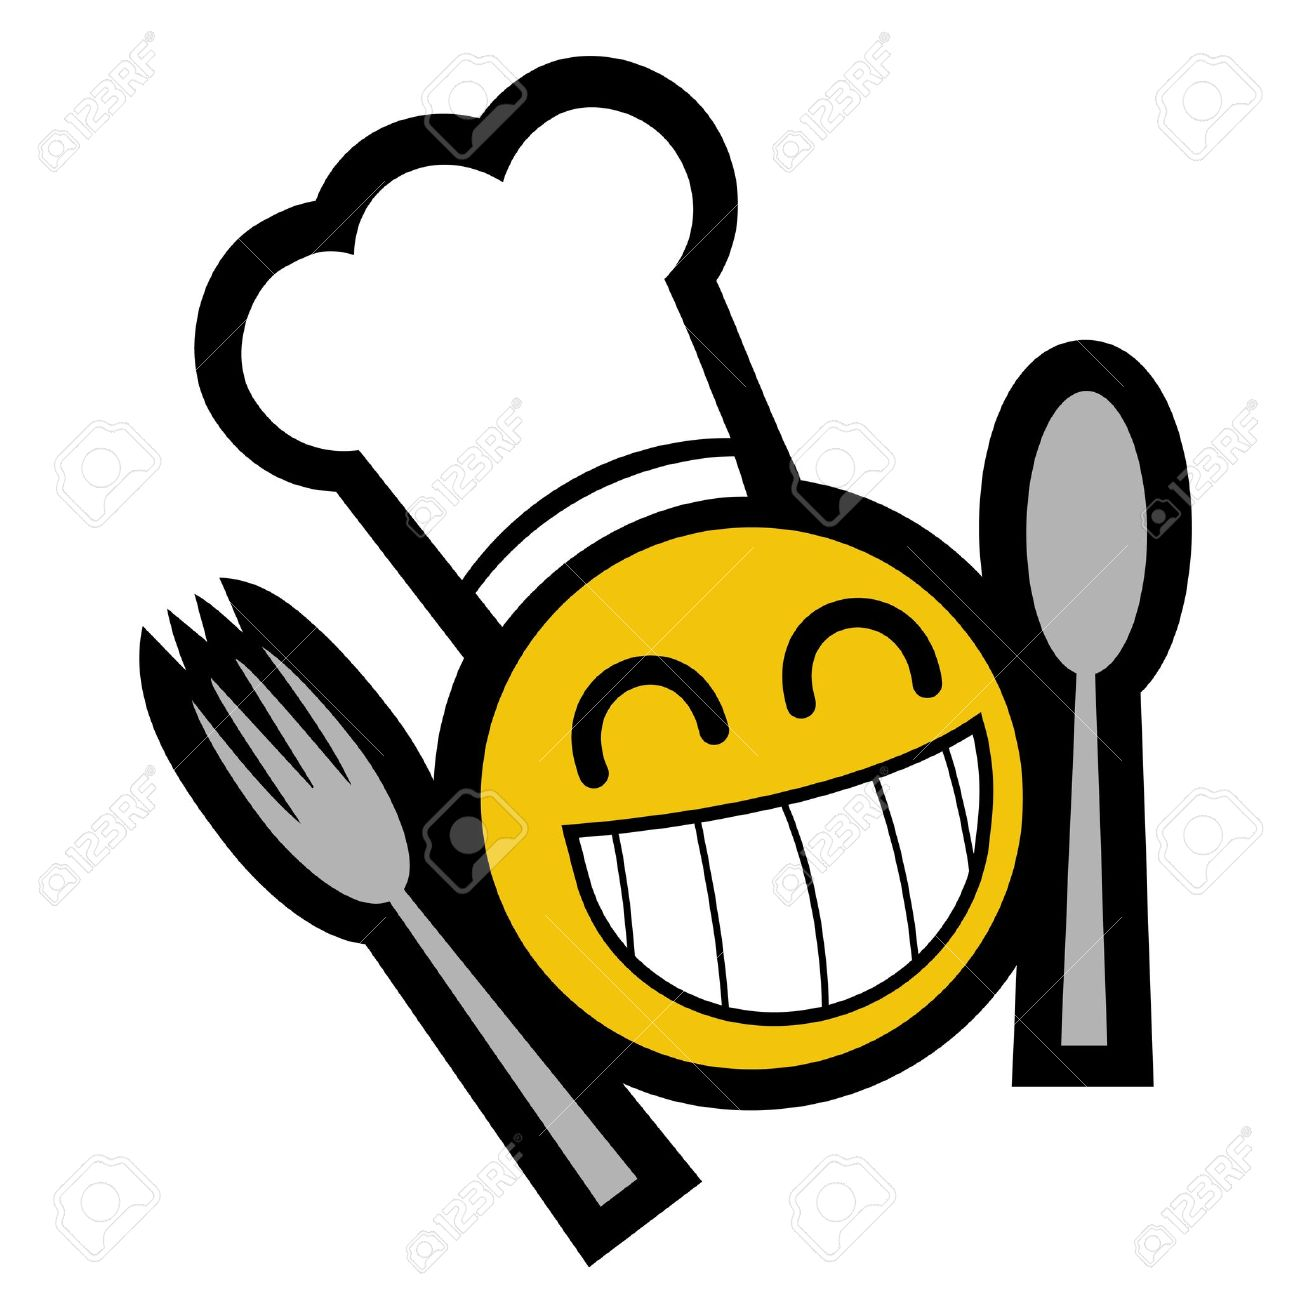 drawing smiley face with eating utensils royalty free cliparts rh 123rf com Sick Smiley-Face Love Smiley Face Clip Art